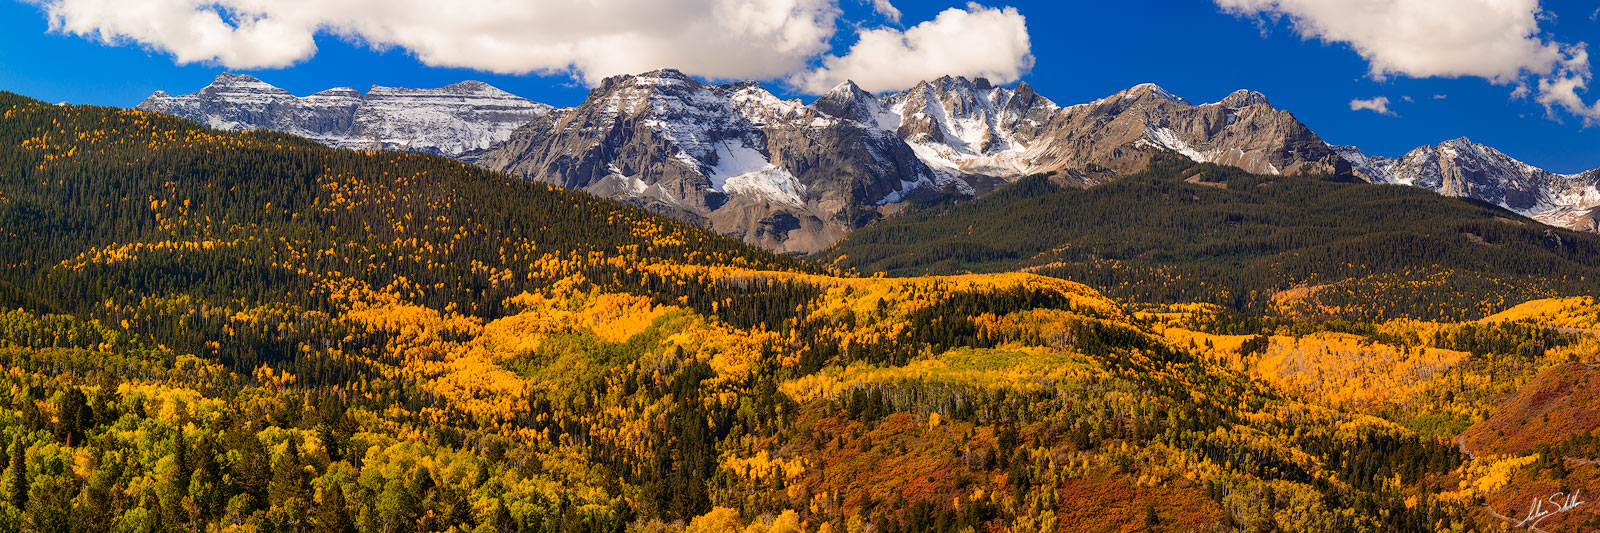 Aspen Trees, Aspens, Autumn, Colorado, Fall, Fall Color, Pano, San Juan Mountains, photo